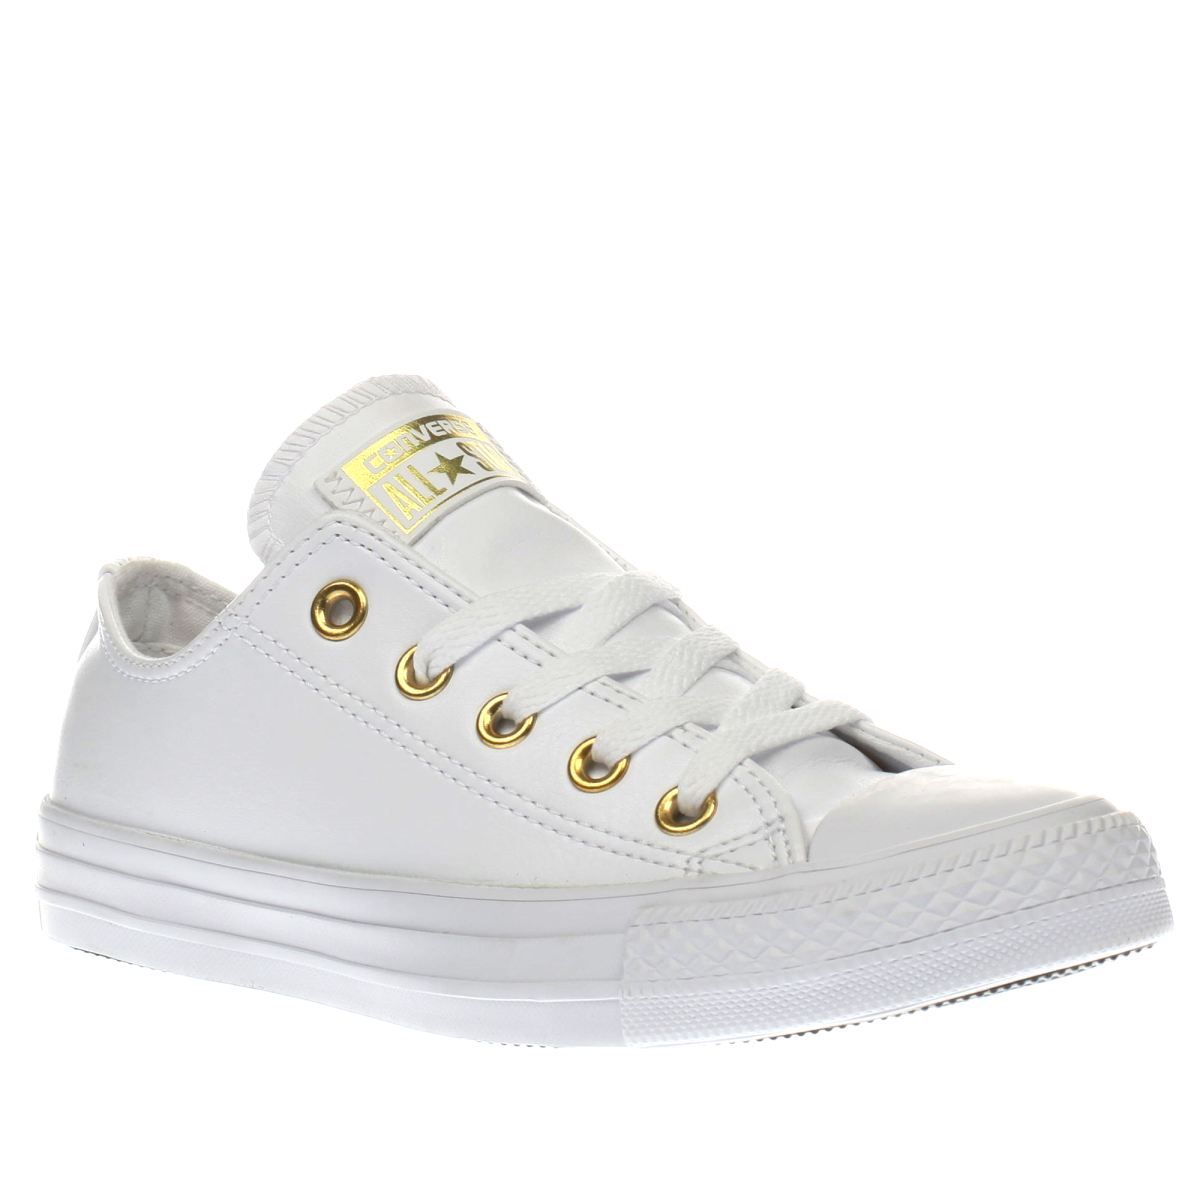 Trainers Shoes for Women Converse Women's Chuck Taylor All